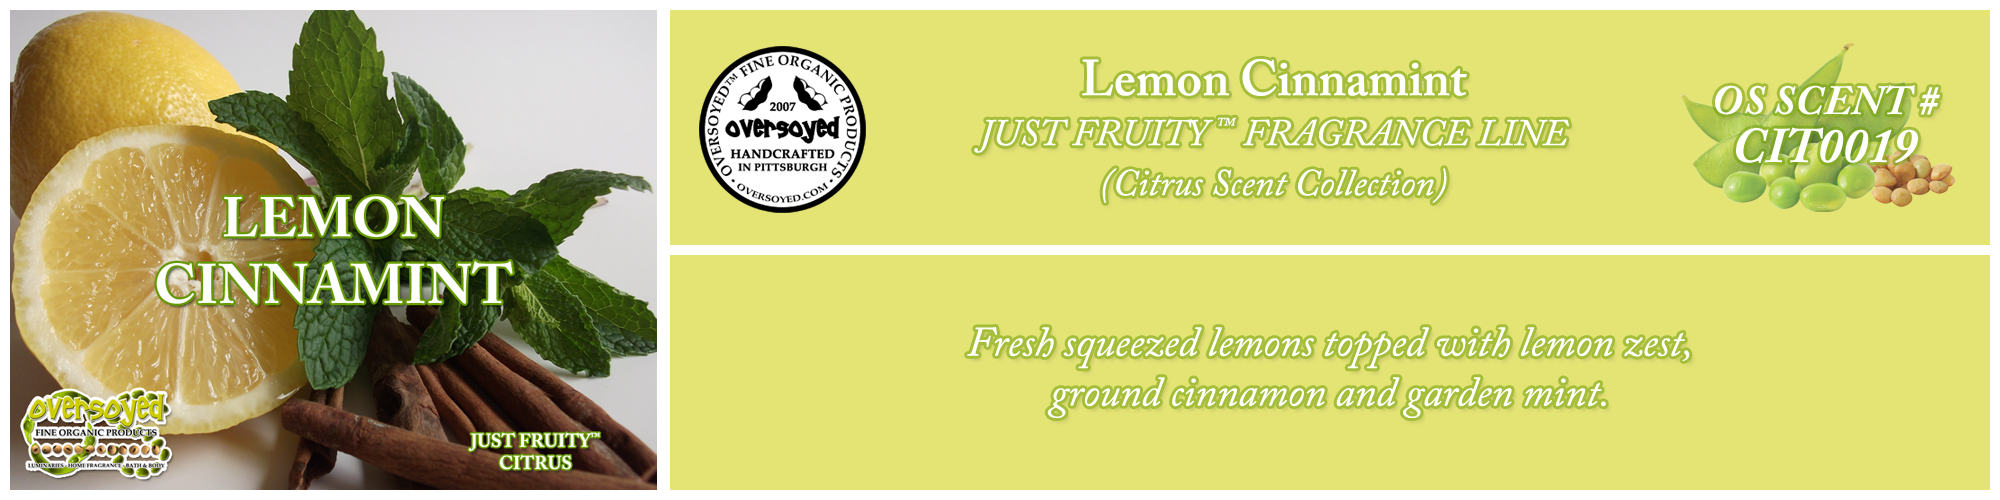 Lemon Cinnamint Handcrafted Products Collection